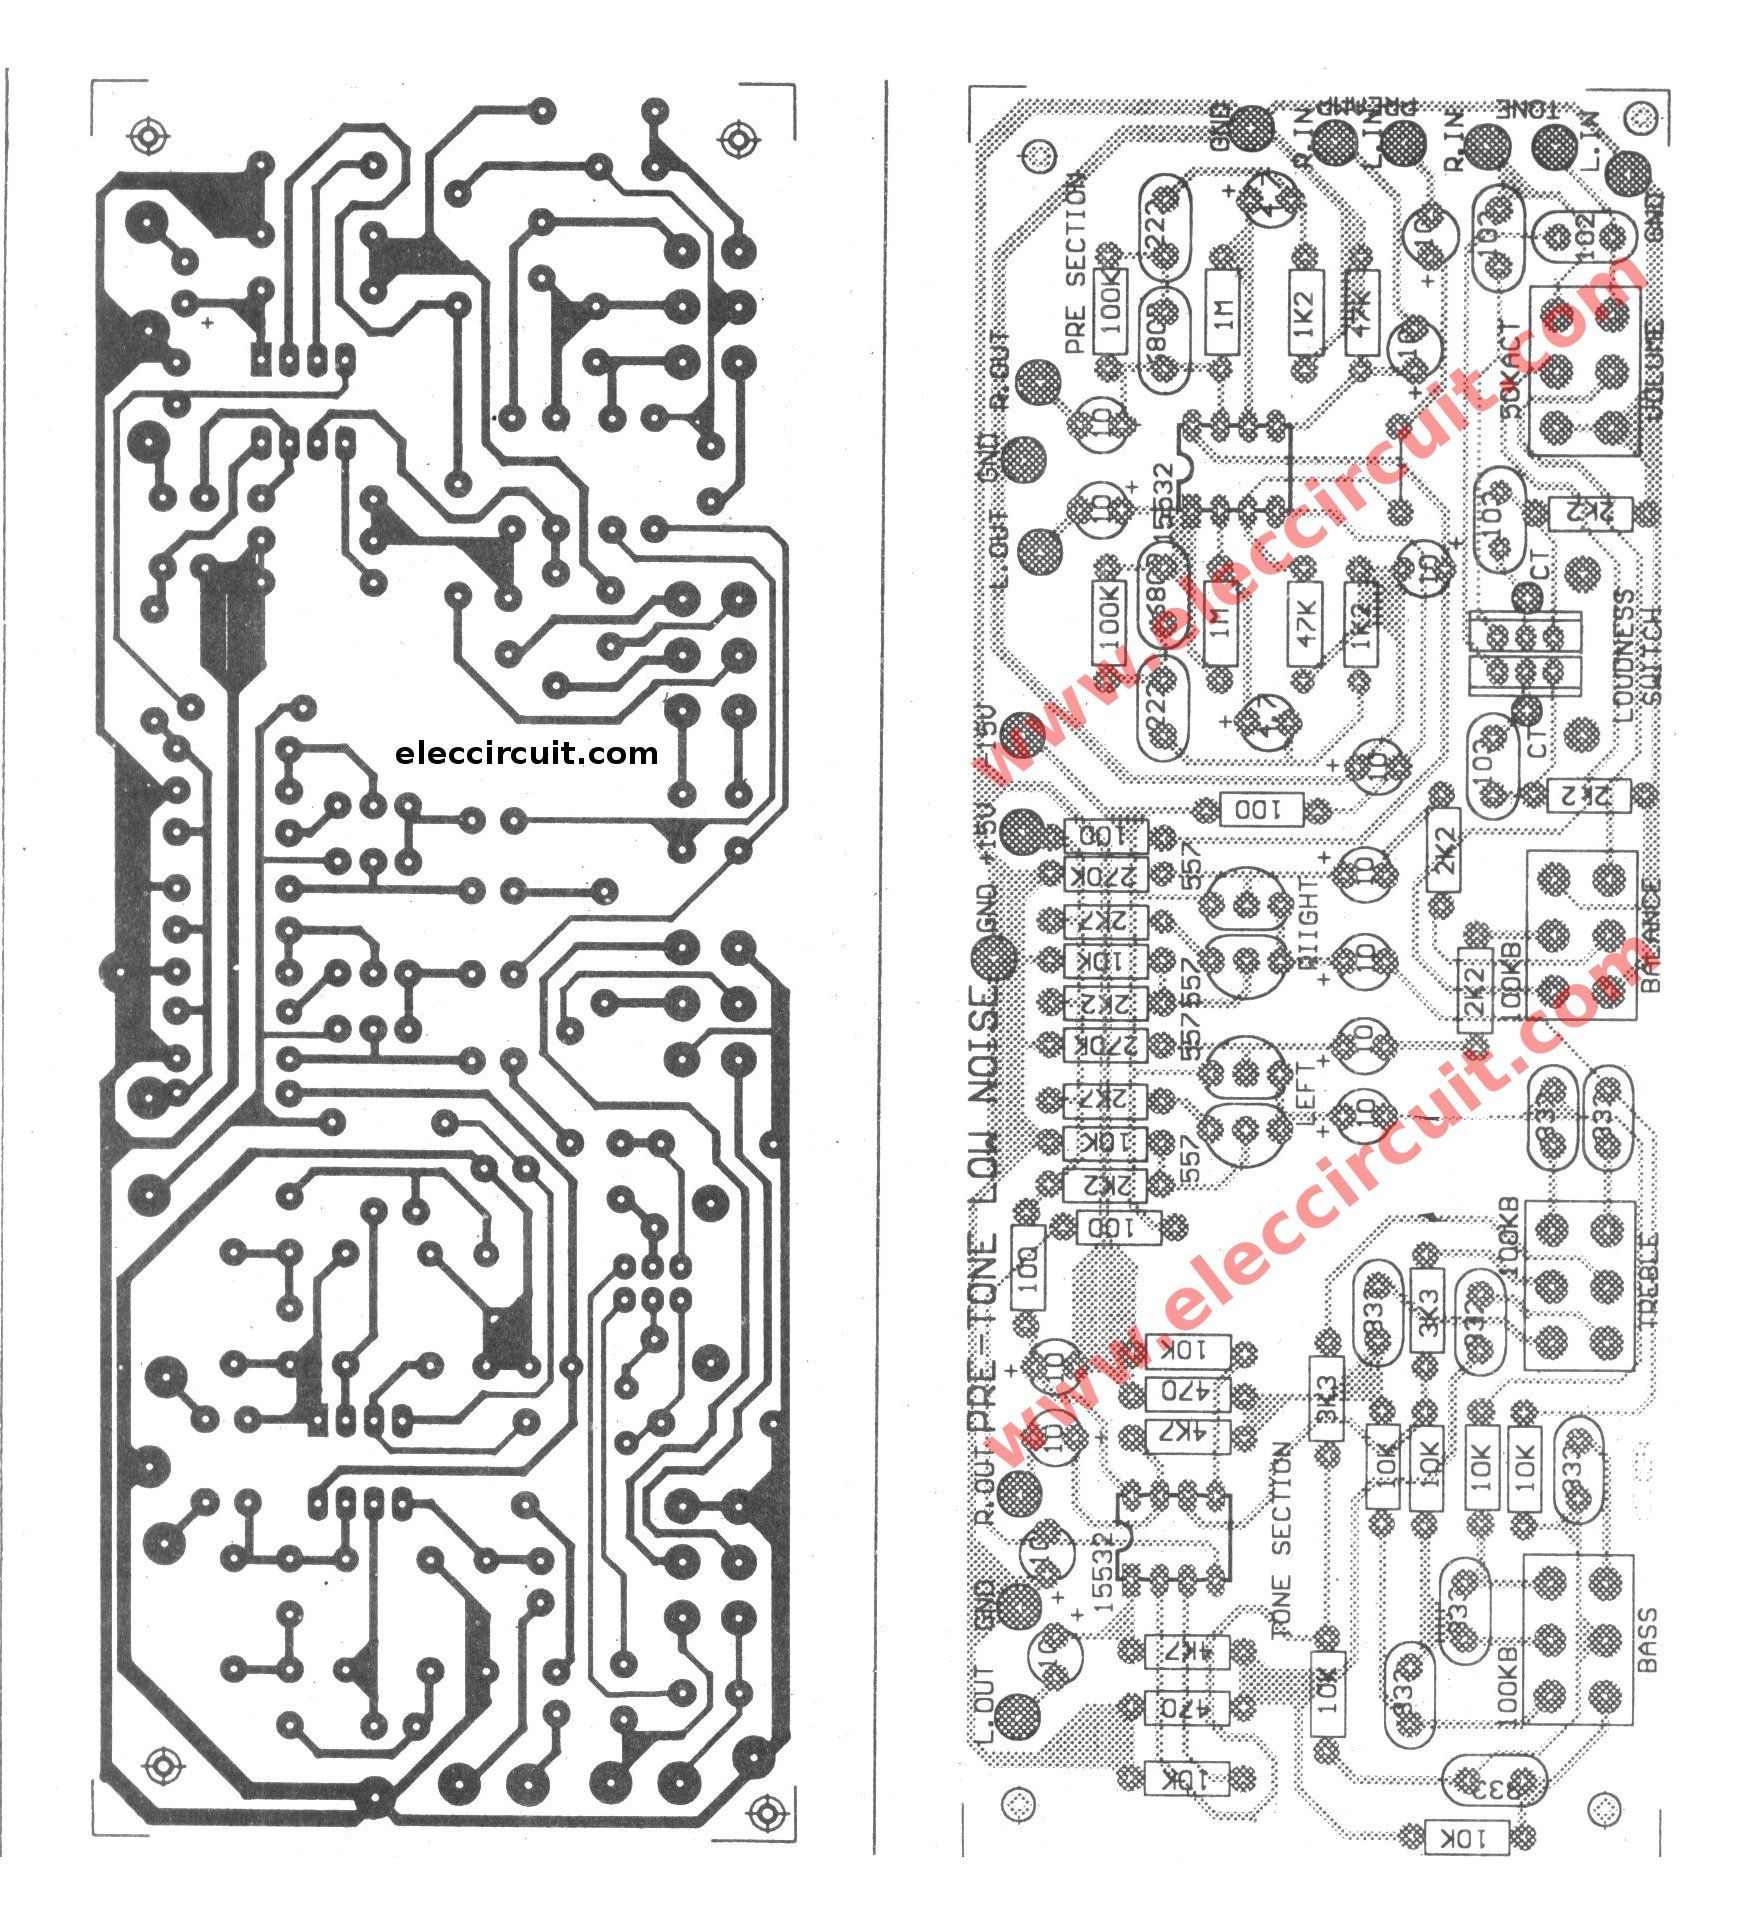 Low Noise Pre Tone Control Circuit Using 4558 Ne55532 Eletrnica Amplifiercircuitsaudio Completeinductioncookercircuit This Is Or Easy Make With One Pcb Layout Board Can Adjust Bass Treble Mid Volumealso Use To Microphone